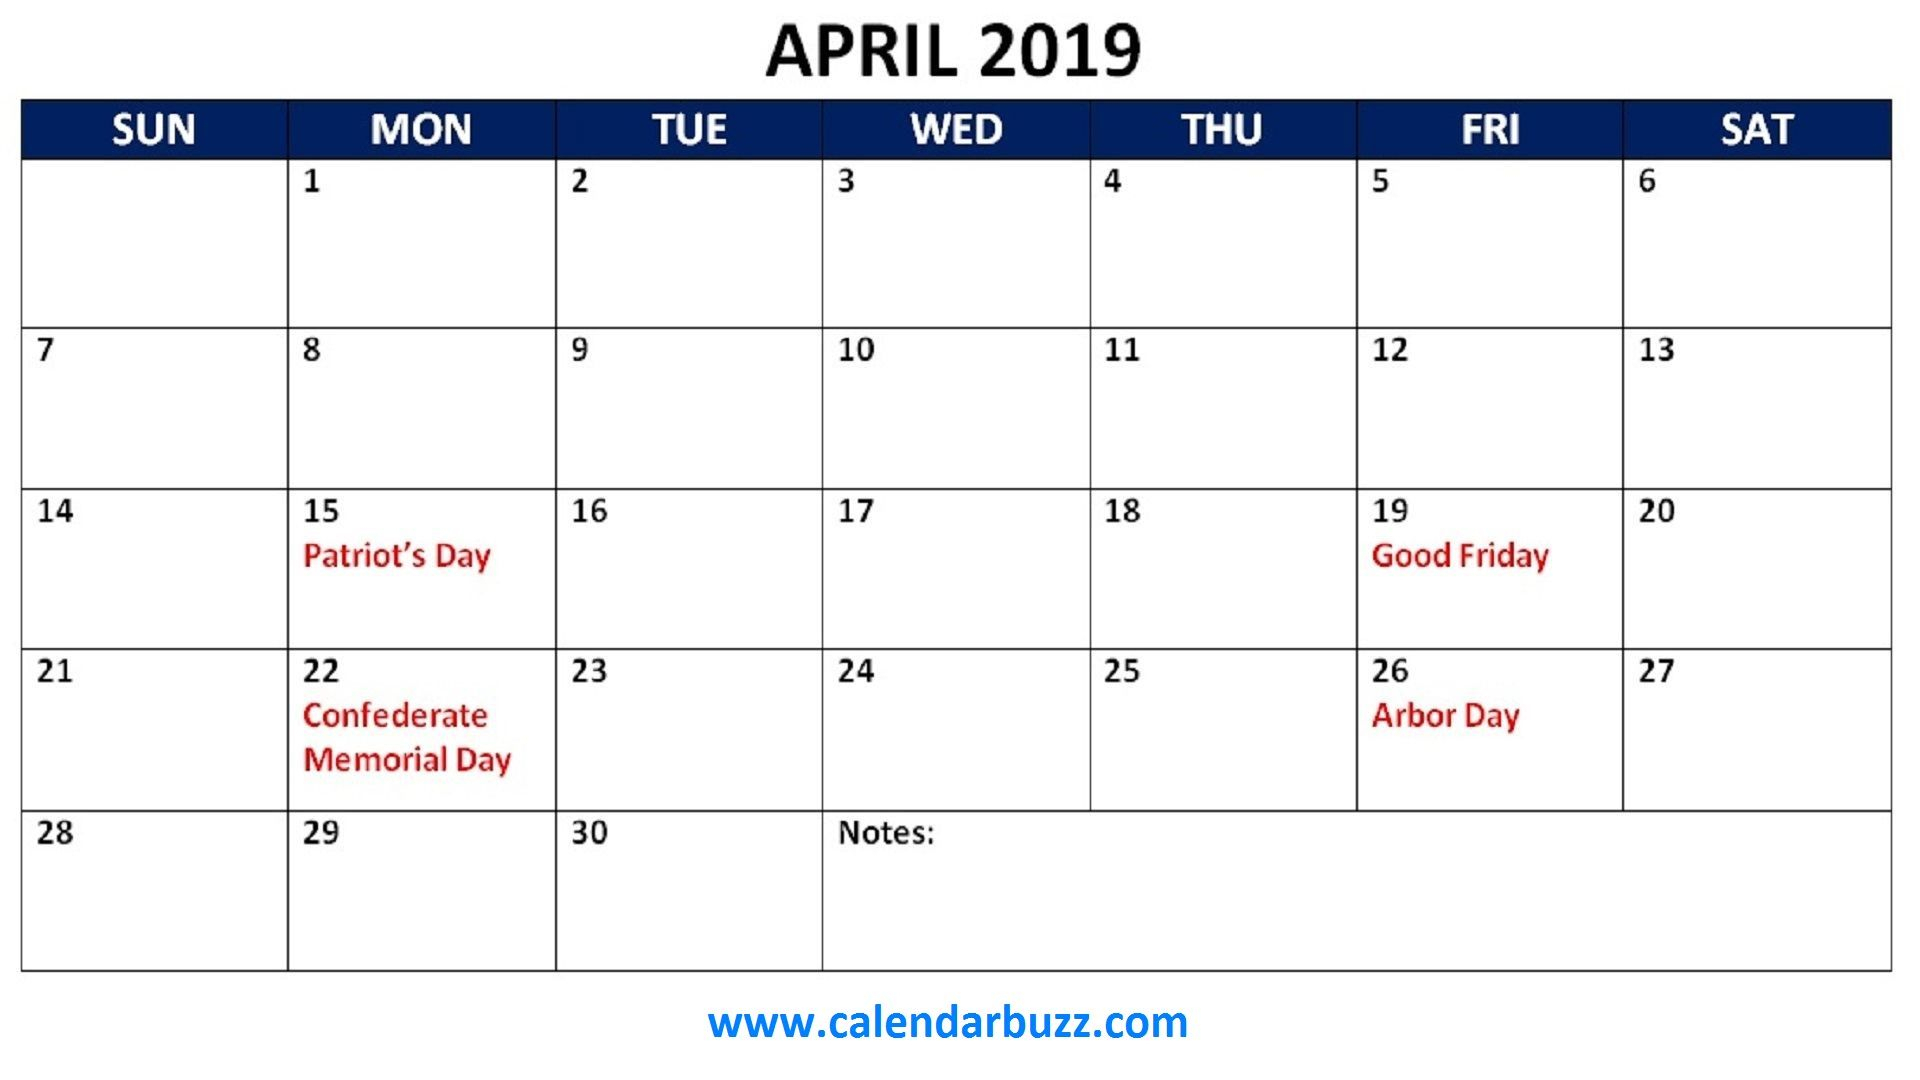 April 2019 Holidays Calendar Printable | 2019 Calendars | Holiday pertaining to Blank Calendar Print-Outs Fill In With Holidays